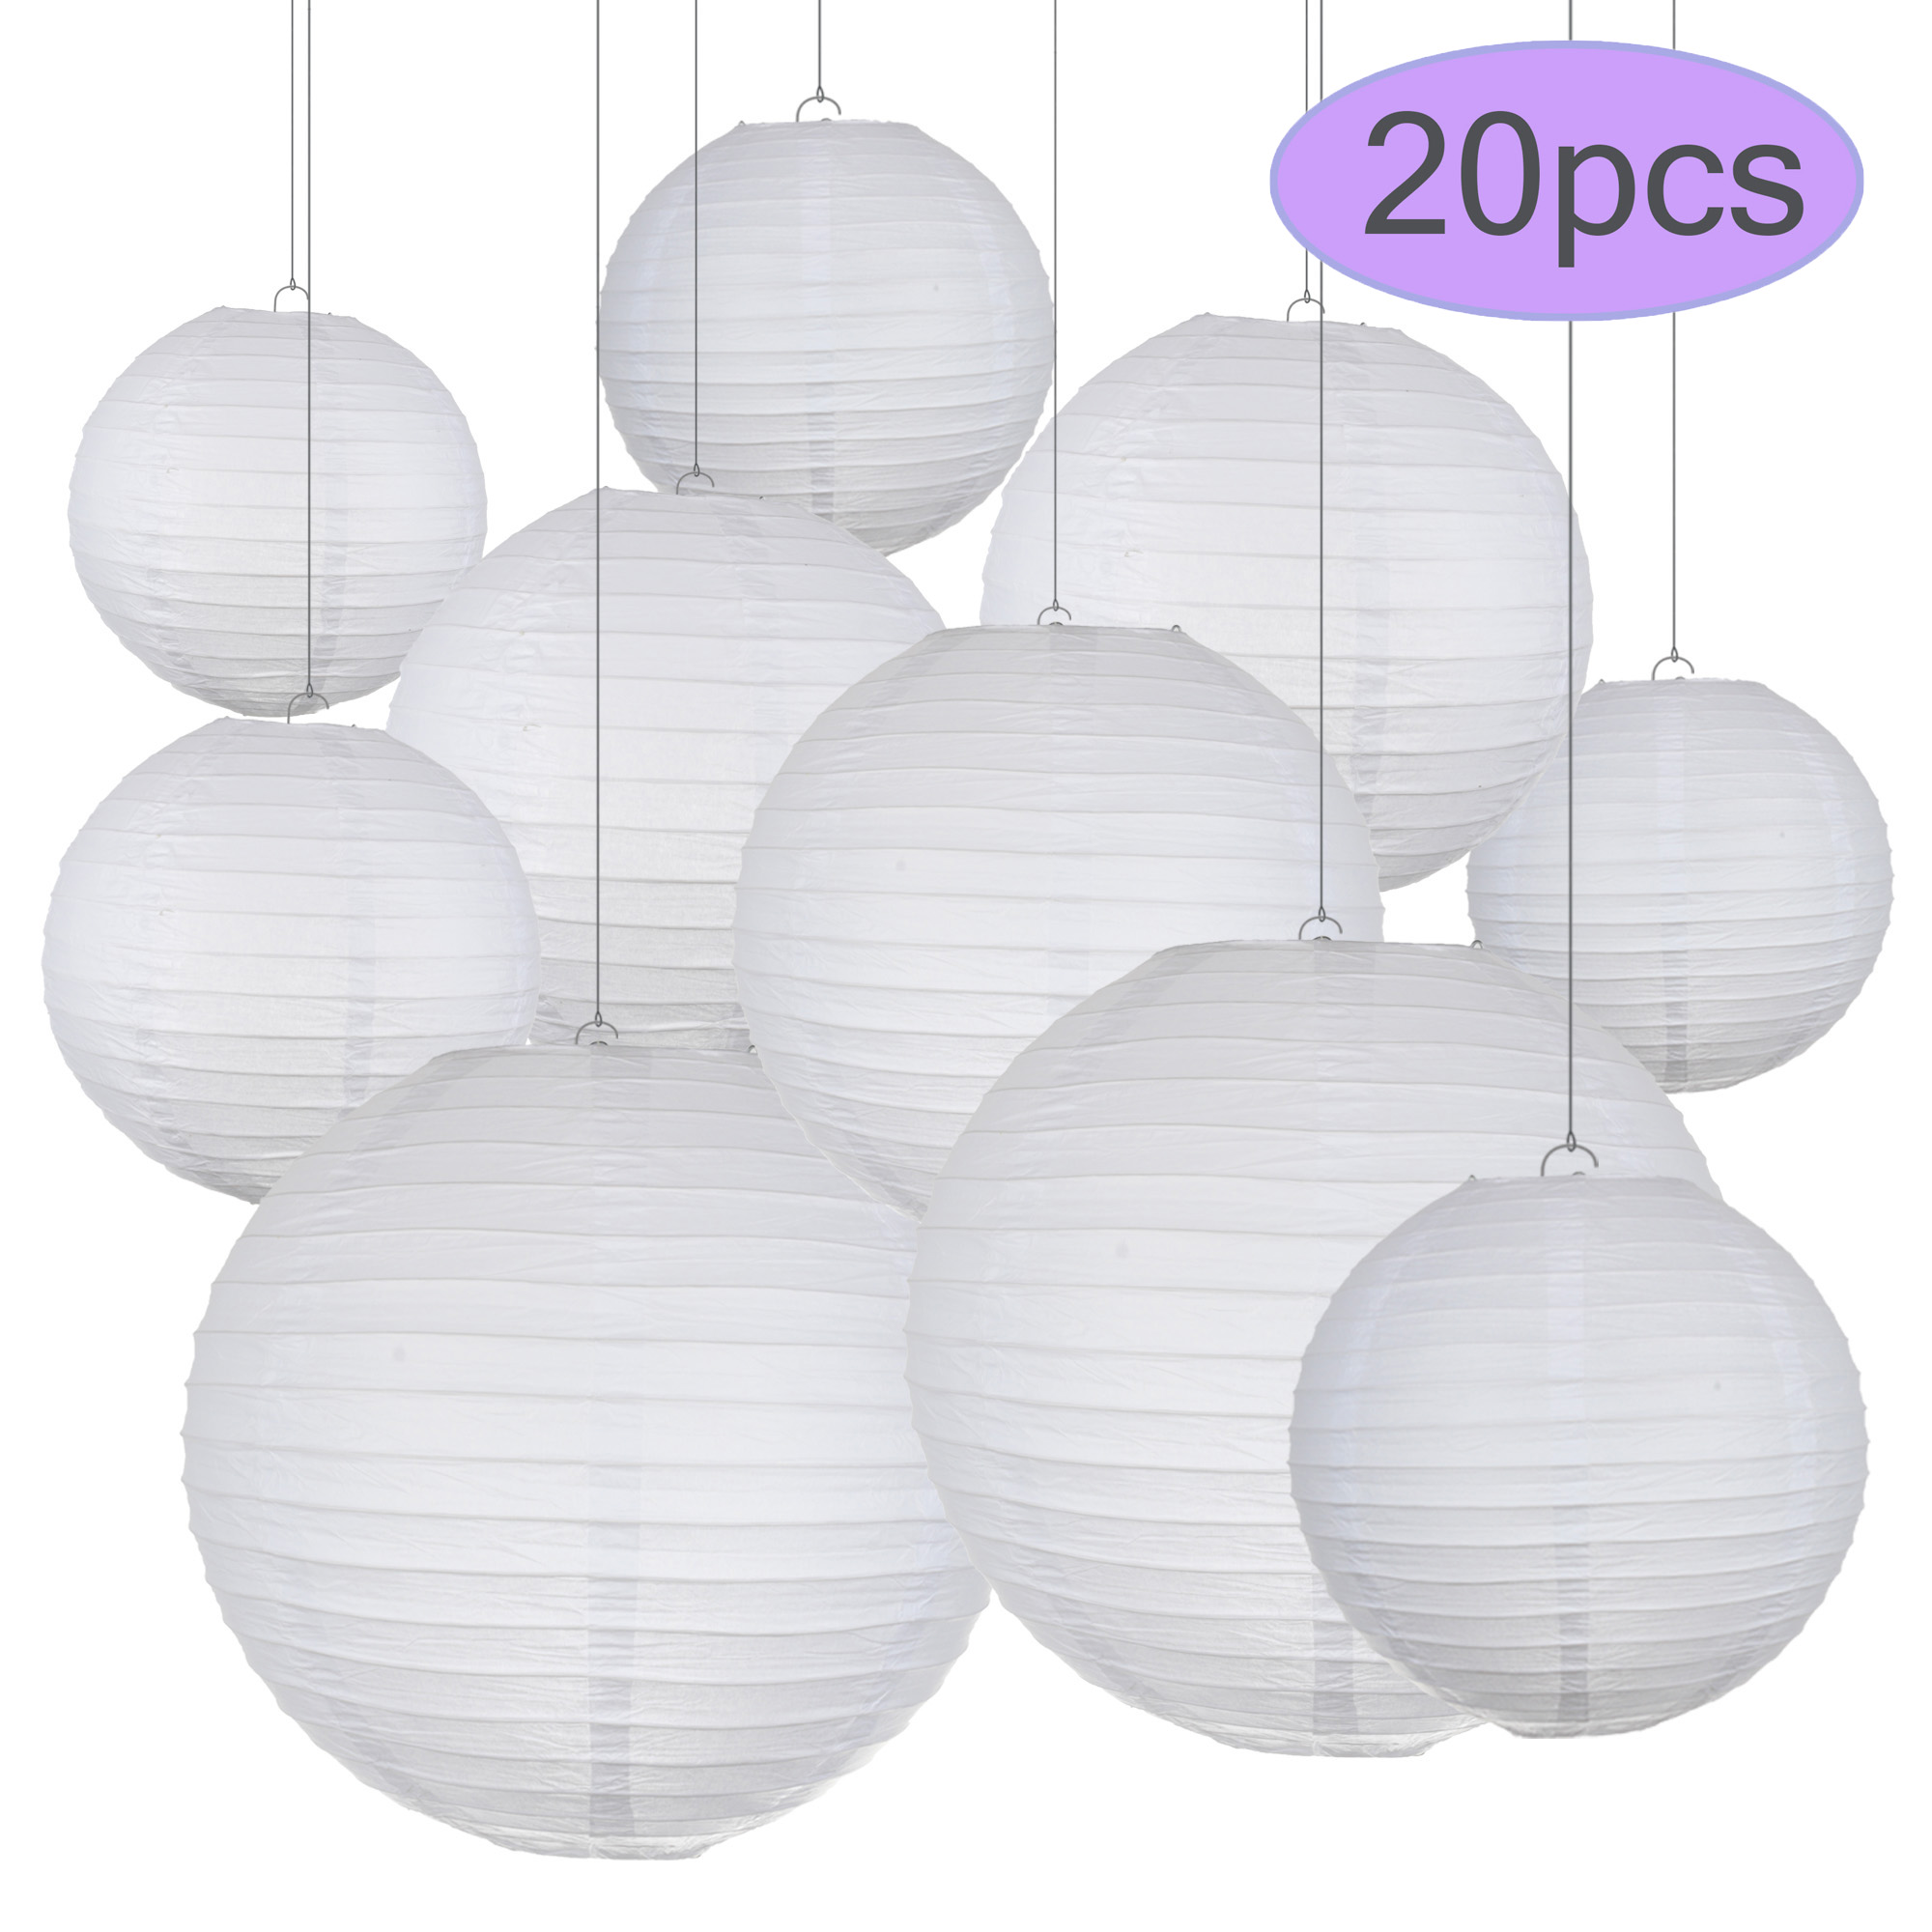 20pcs/Lot 681012inch White Chinese Paper Ball Lampion Wedding Decoration Lanterns Paper Lampshade Engagement  Party  Decor20pcs/Lot 681012inch White Chinese Paper Ball Lampion Wedding Decoration Lanterns Paper Lampshade Engagement  Party  Decor